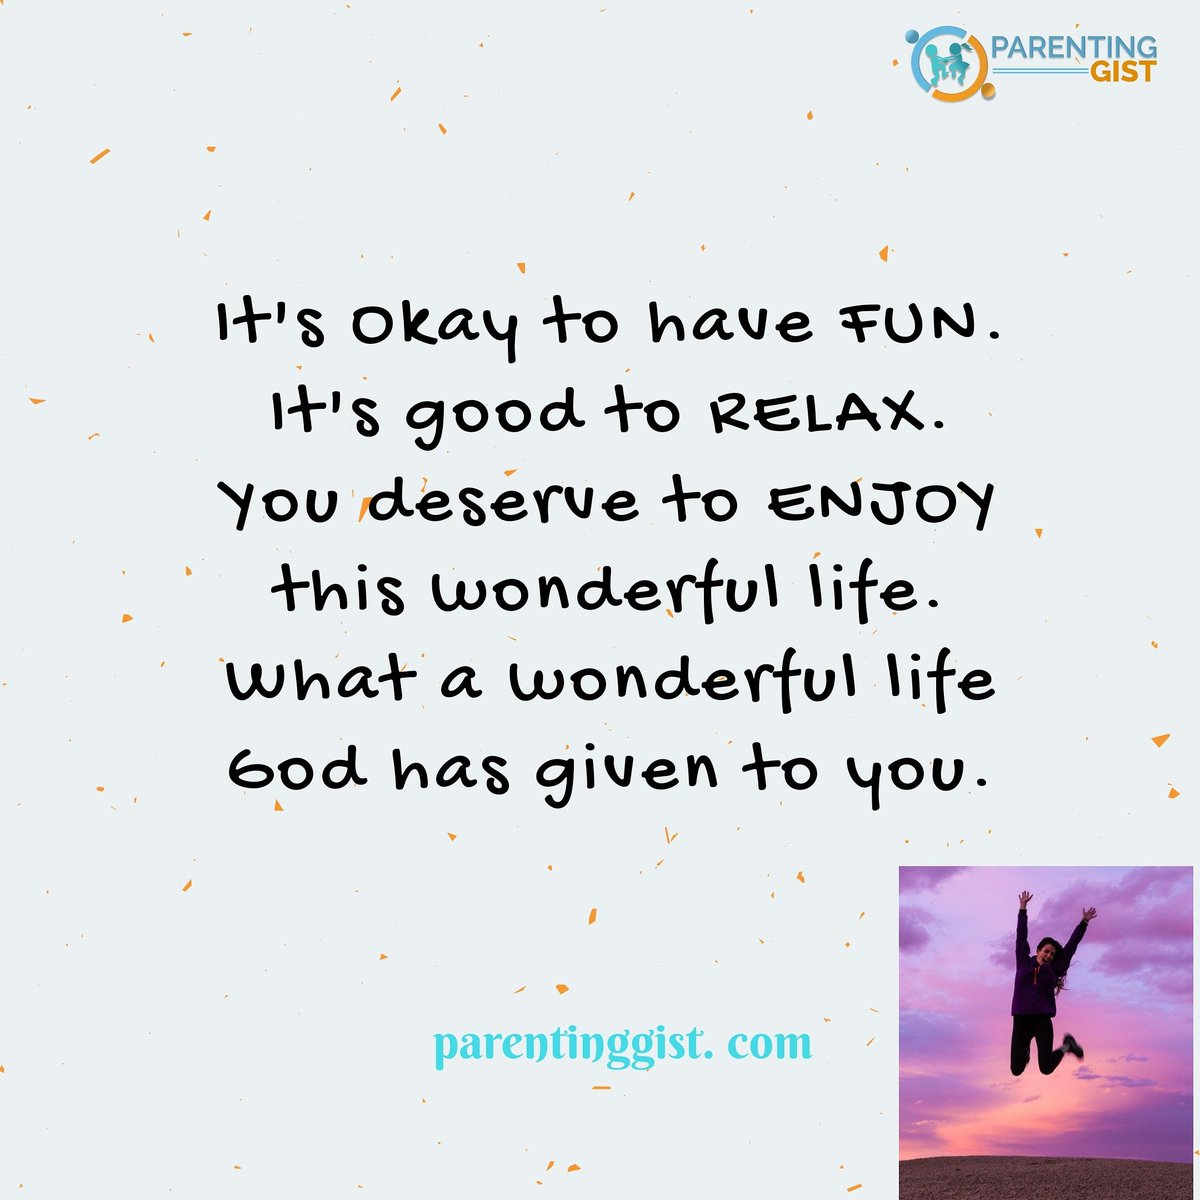 It's okay to have #fun . . It's good to #relax  . . You deserve to #enjoy this #life . . What a #wonderful life #God has given to you. . . . . . . . #selfcarequote #parentinggist #happiermoms #weekendvibes #justice #peace #blm #stayinghappy #strongmoms #blackmentalhealthpic.twitter.com/bweWywg82V